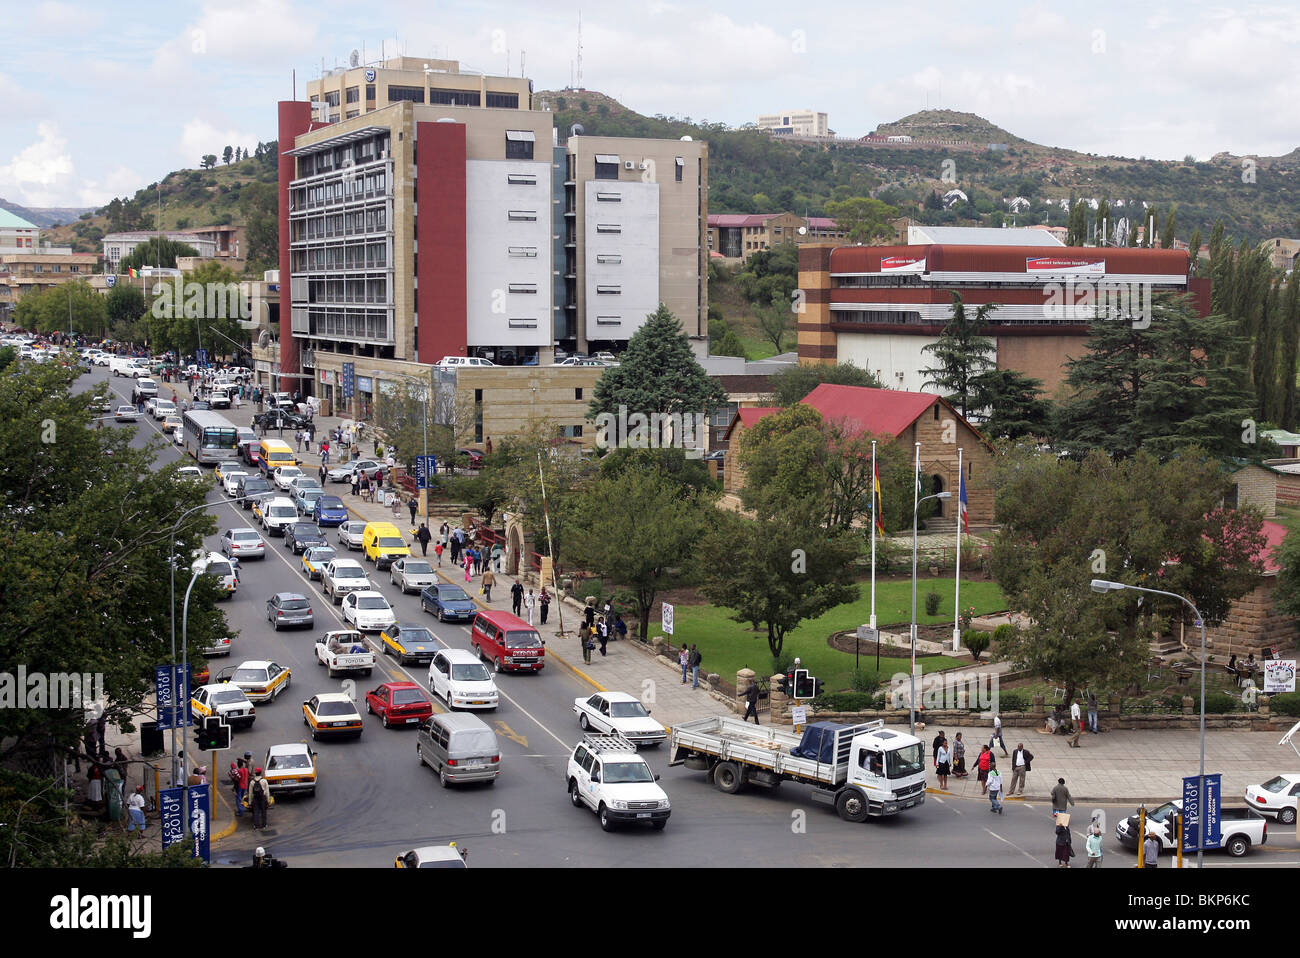 Central Maseru, Capital of Lesotho - Stock Image